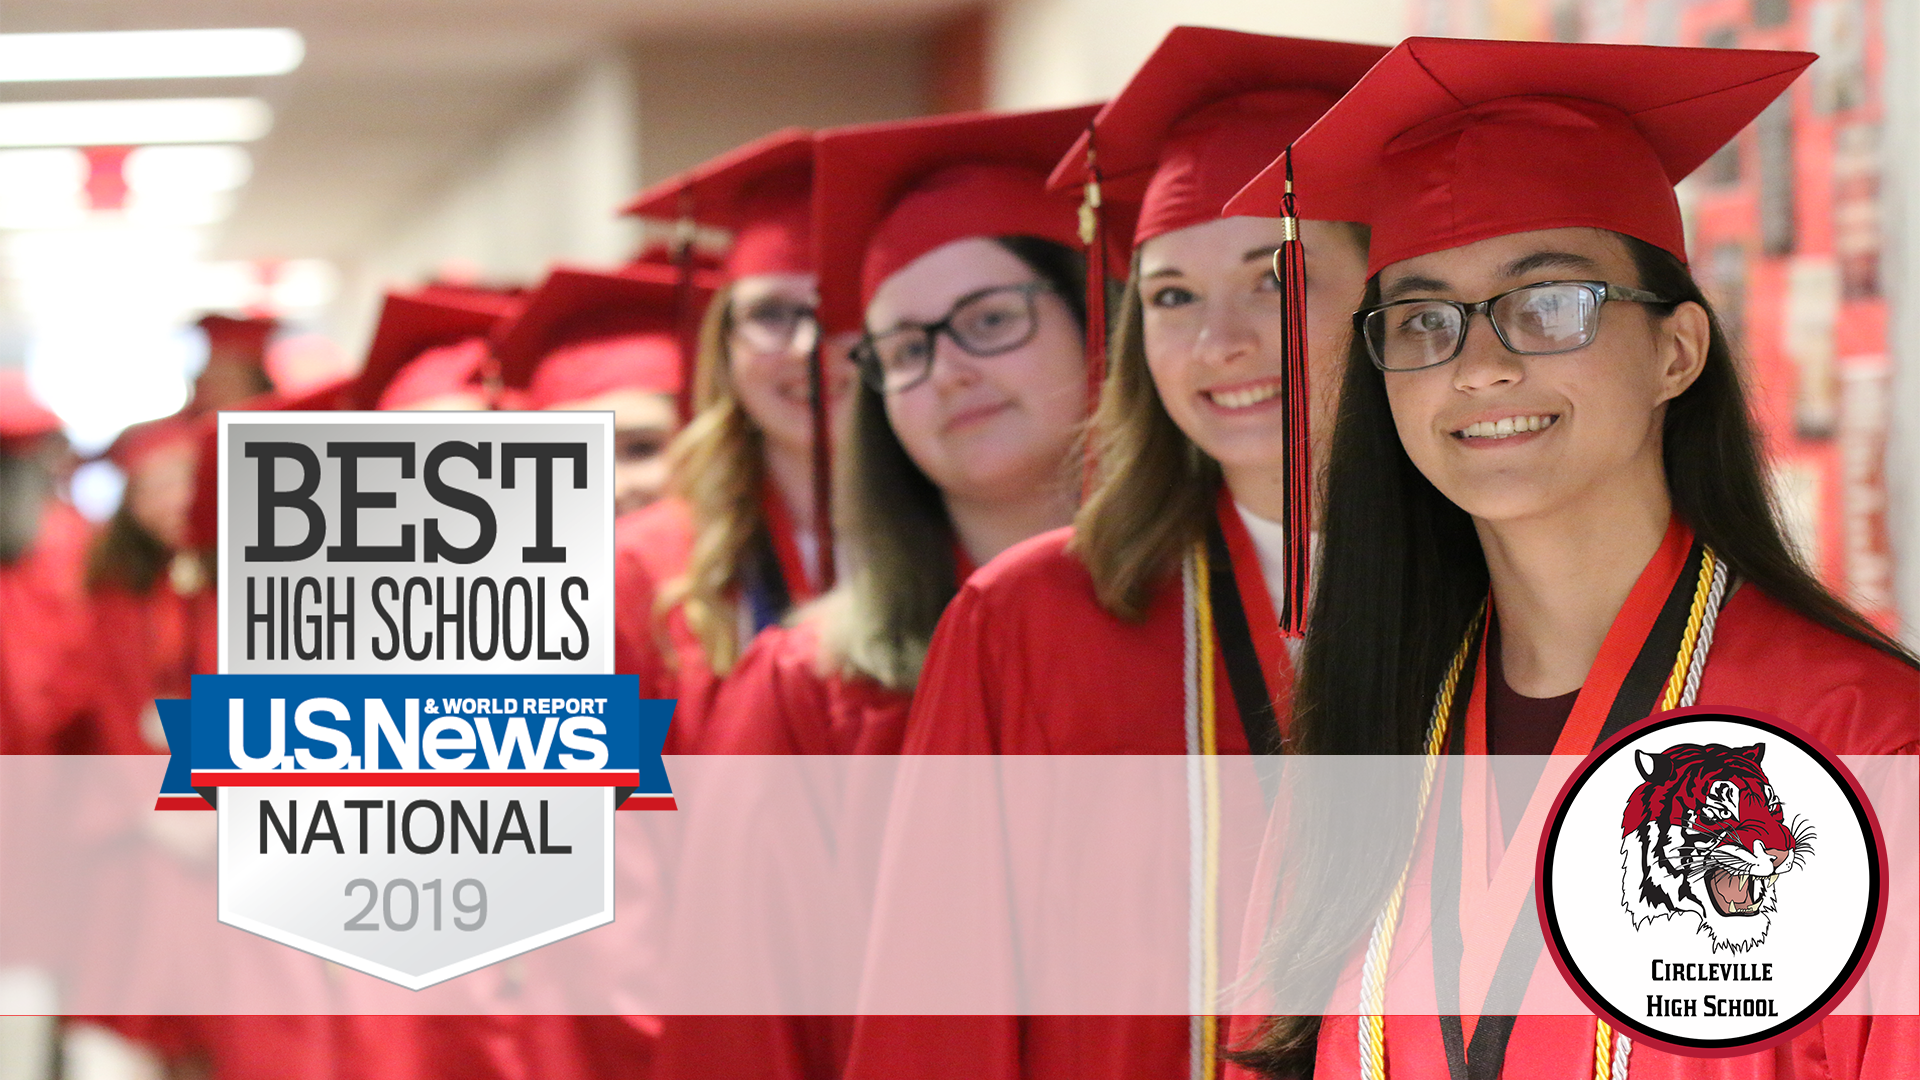 Circleville High School has been named to the U.S. News Best High Schools Rankings report identifying the 9th through 12th-grade school as a top 40%  educational institution nationally.